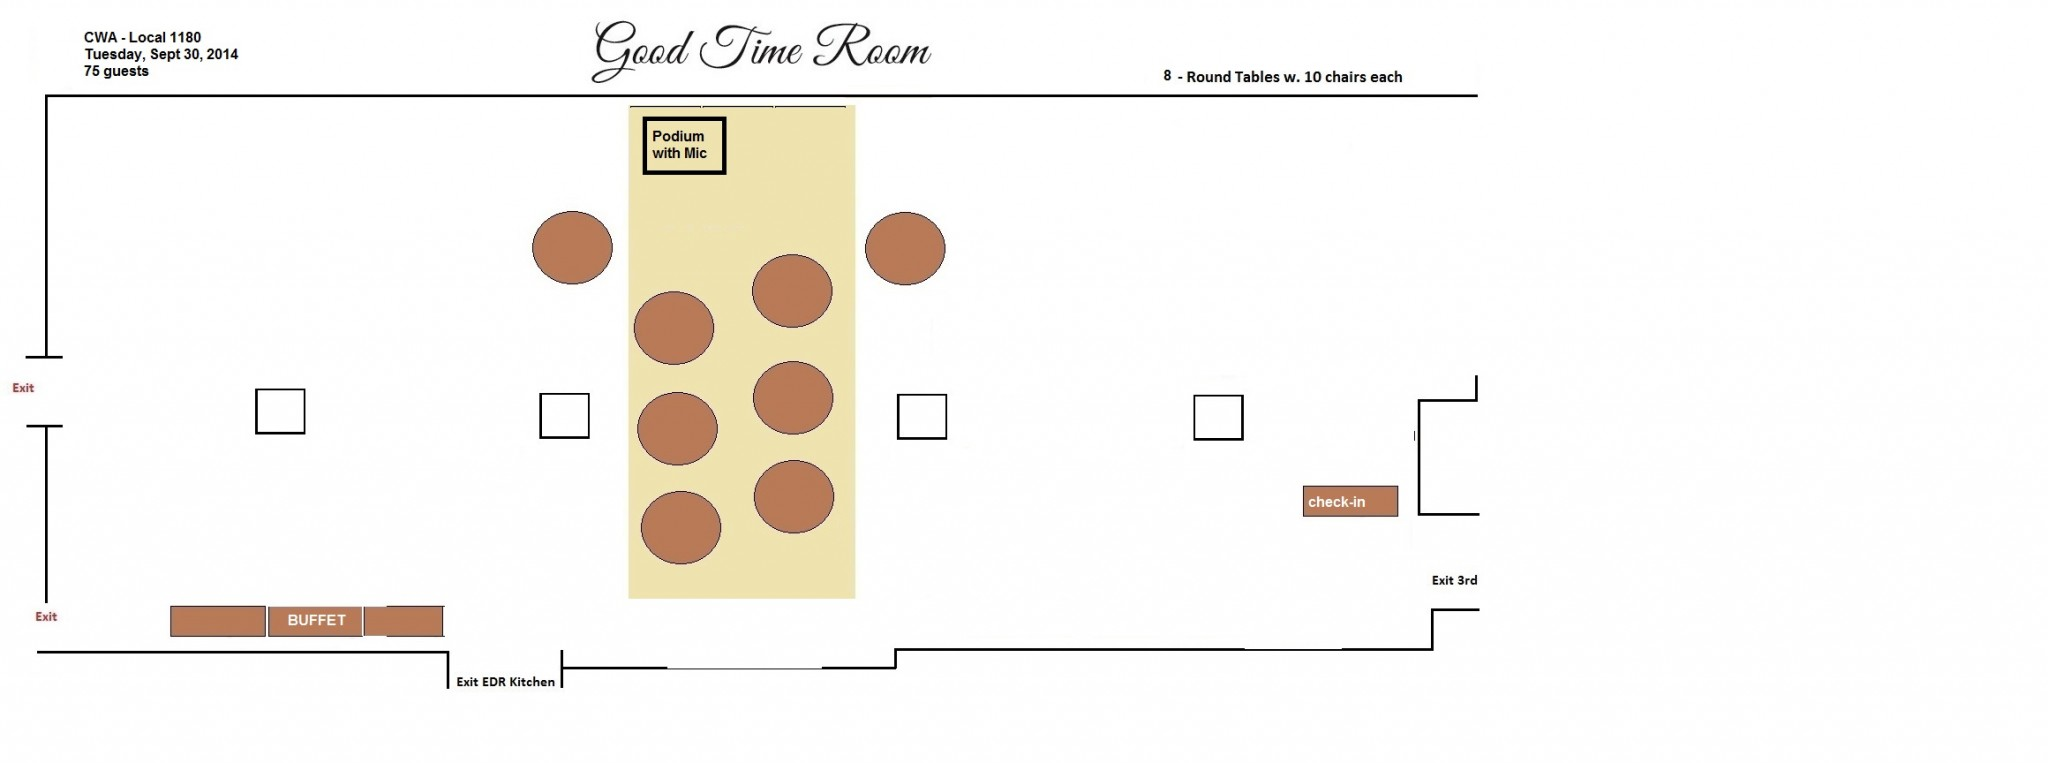 Good Time Room: CWA Layout